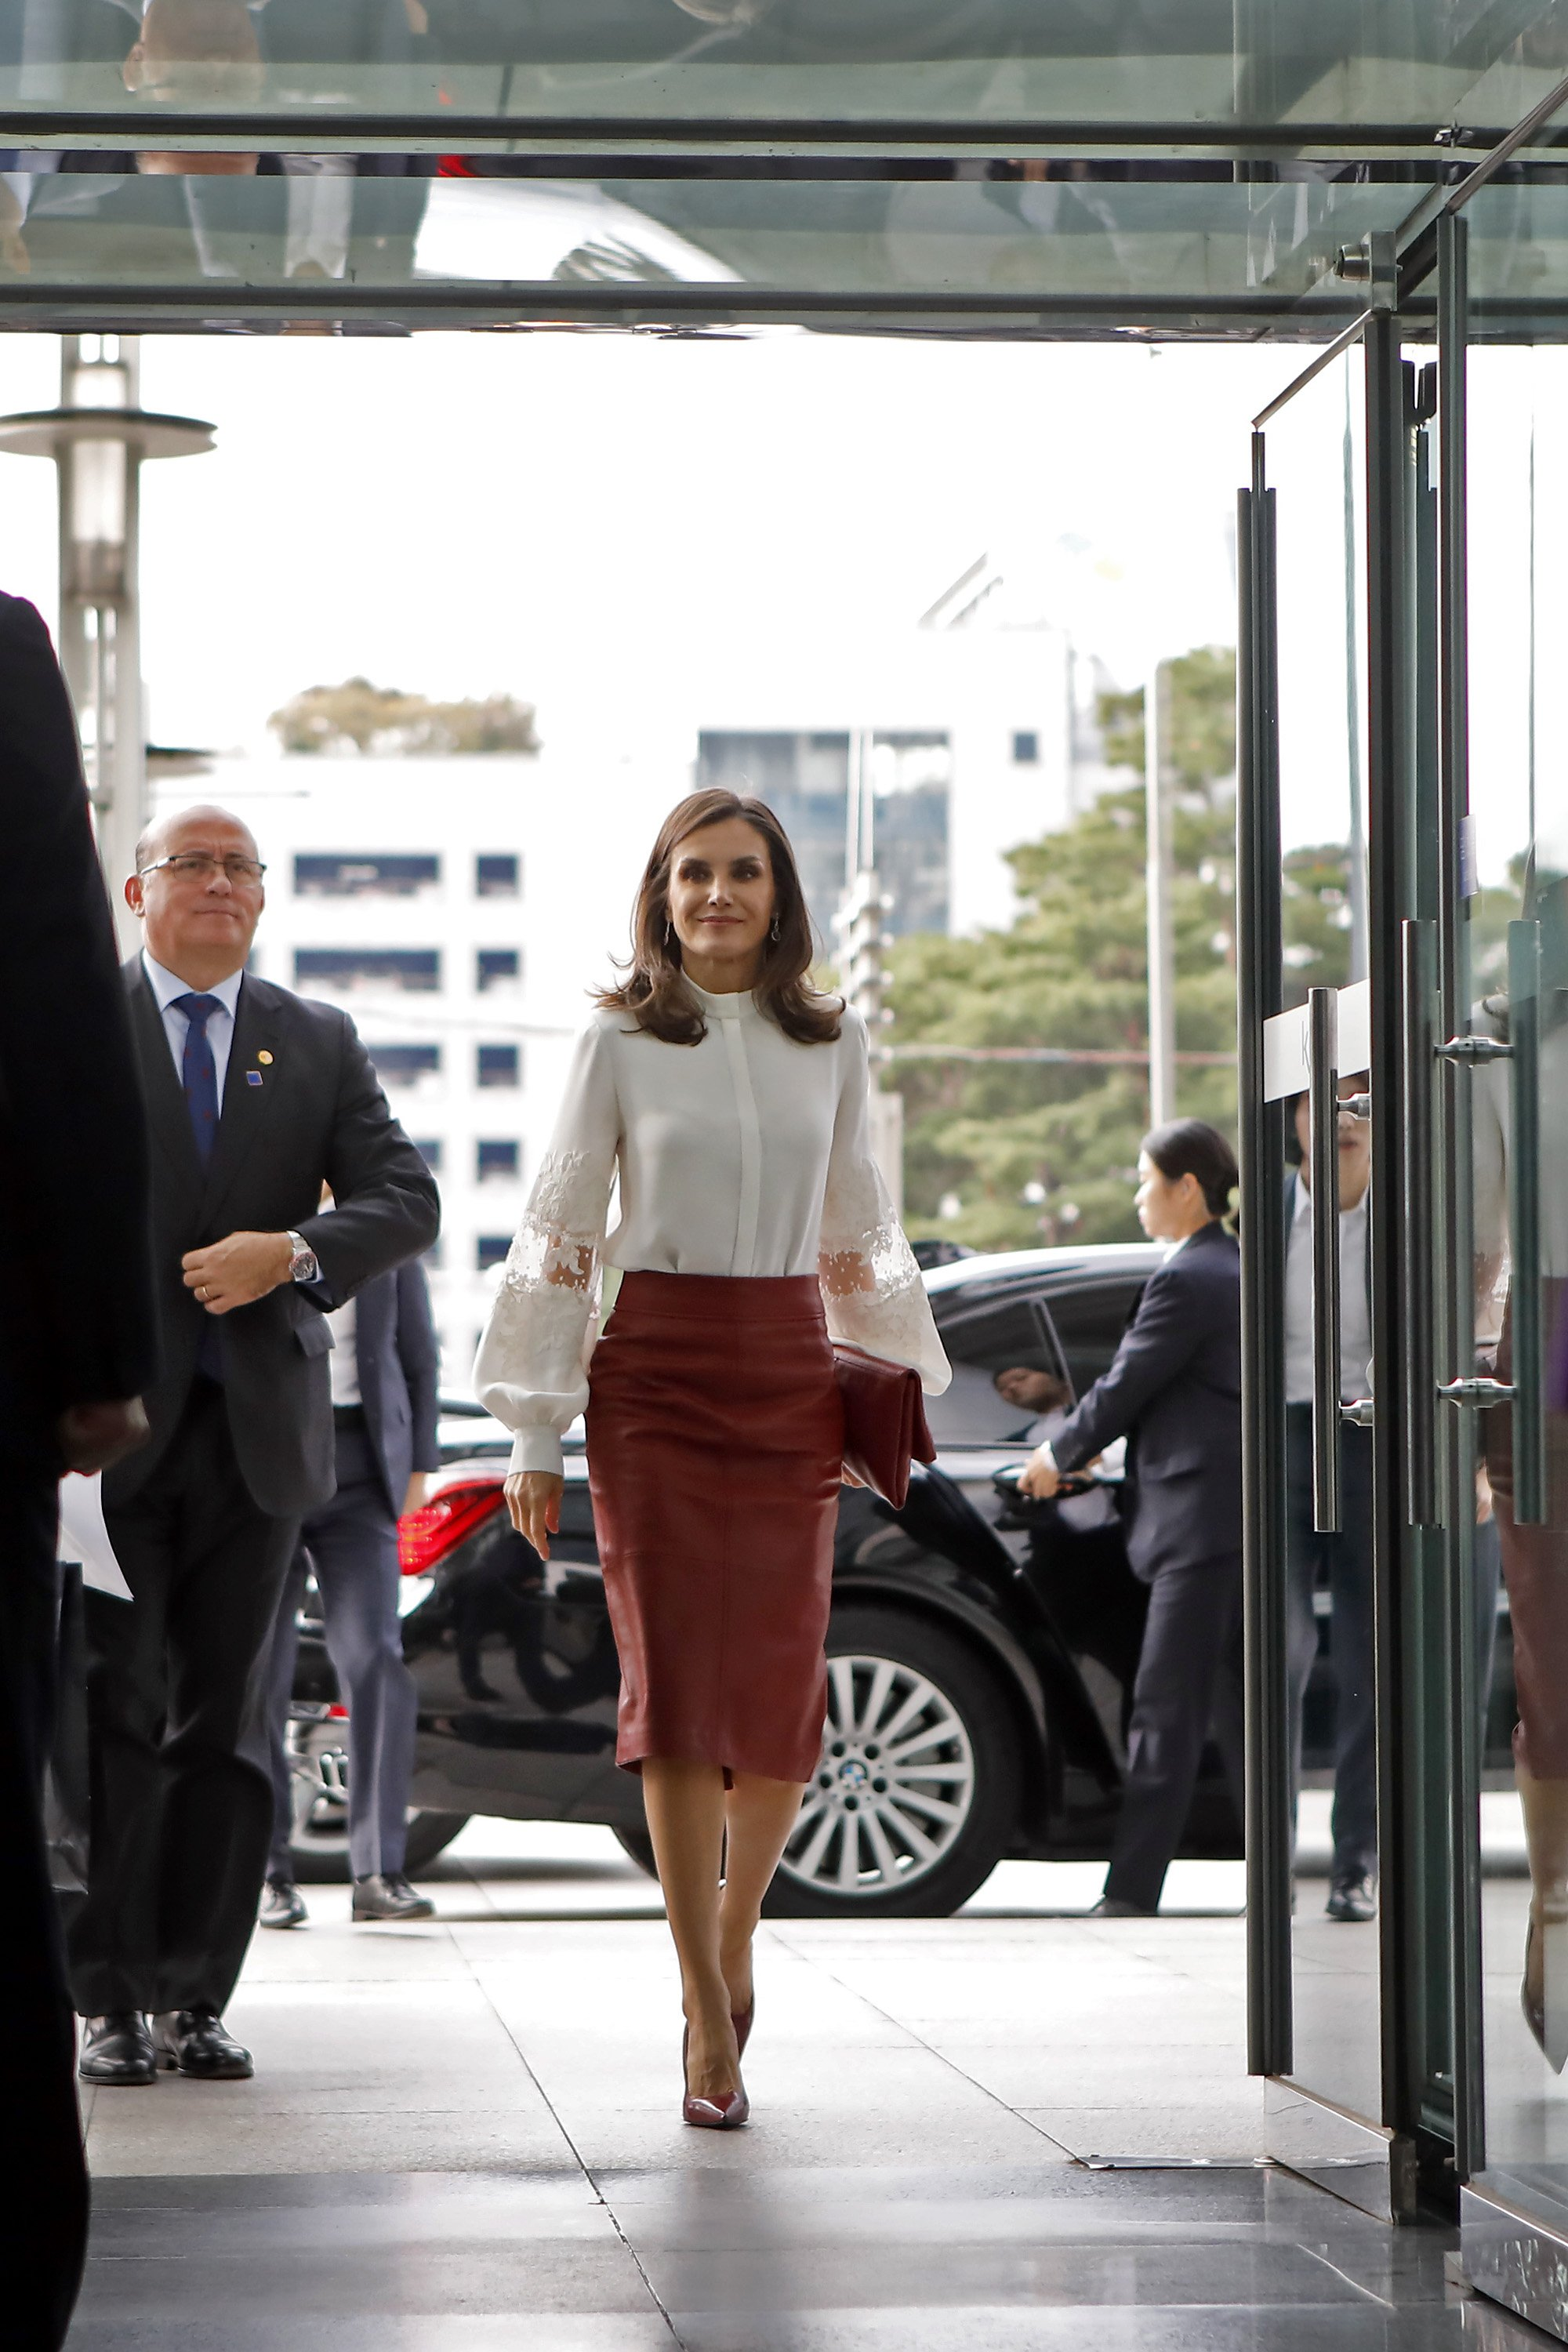 Queen Letizia of Spain arrives at KOTRA, on October 24, 2019 in Seoul, South Korea | Photo: Getty Images